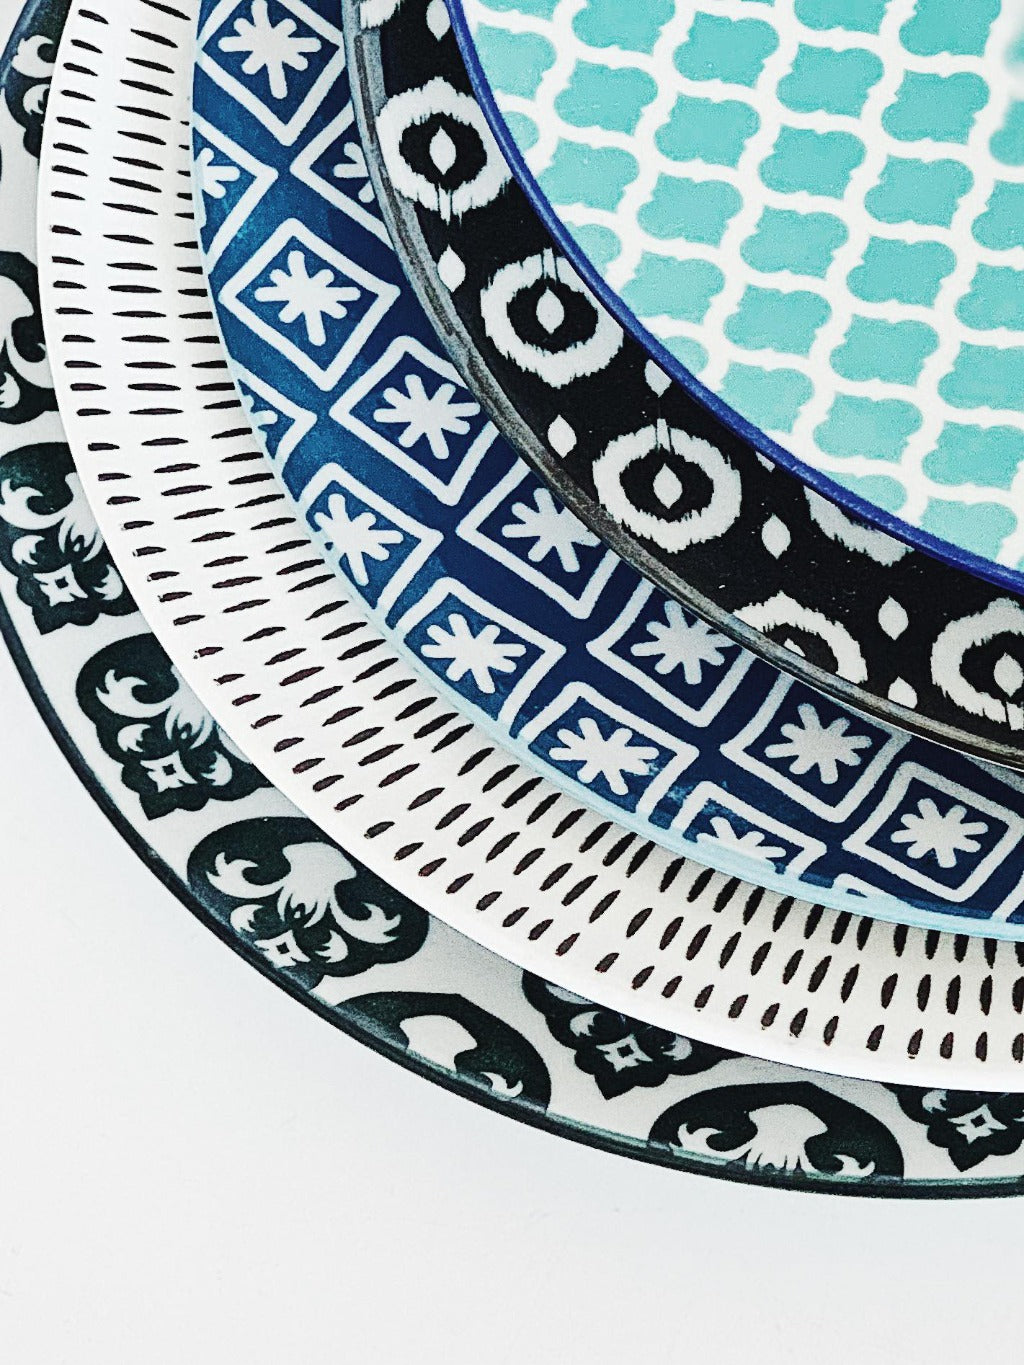 Moroccan Style Dinner Plate Large – perfect for serving dinner or large meals - Moroccan Style Dinnerware - Mix & Match - 27cmW x 2cmH - wide range of colours and patterns - Commercial Grade quality - Patterns Picked at random |Bliss Gifts & Homewares - Unit 8, 259 Princes Hwy Ulladulla - Shop Online - 0427795959, 44541523 - Australia wide shipping – AfterPay Available